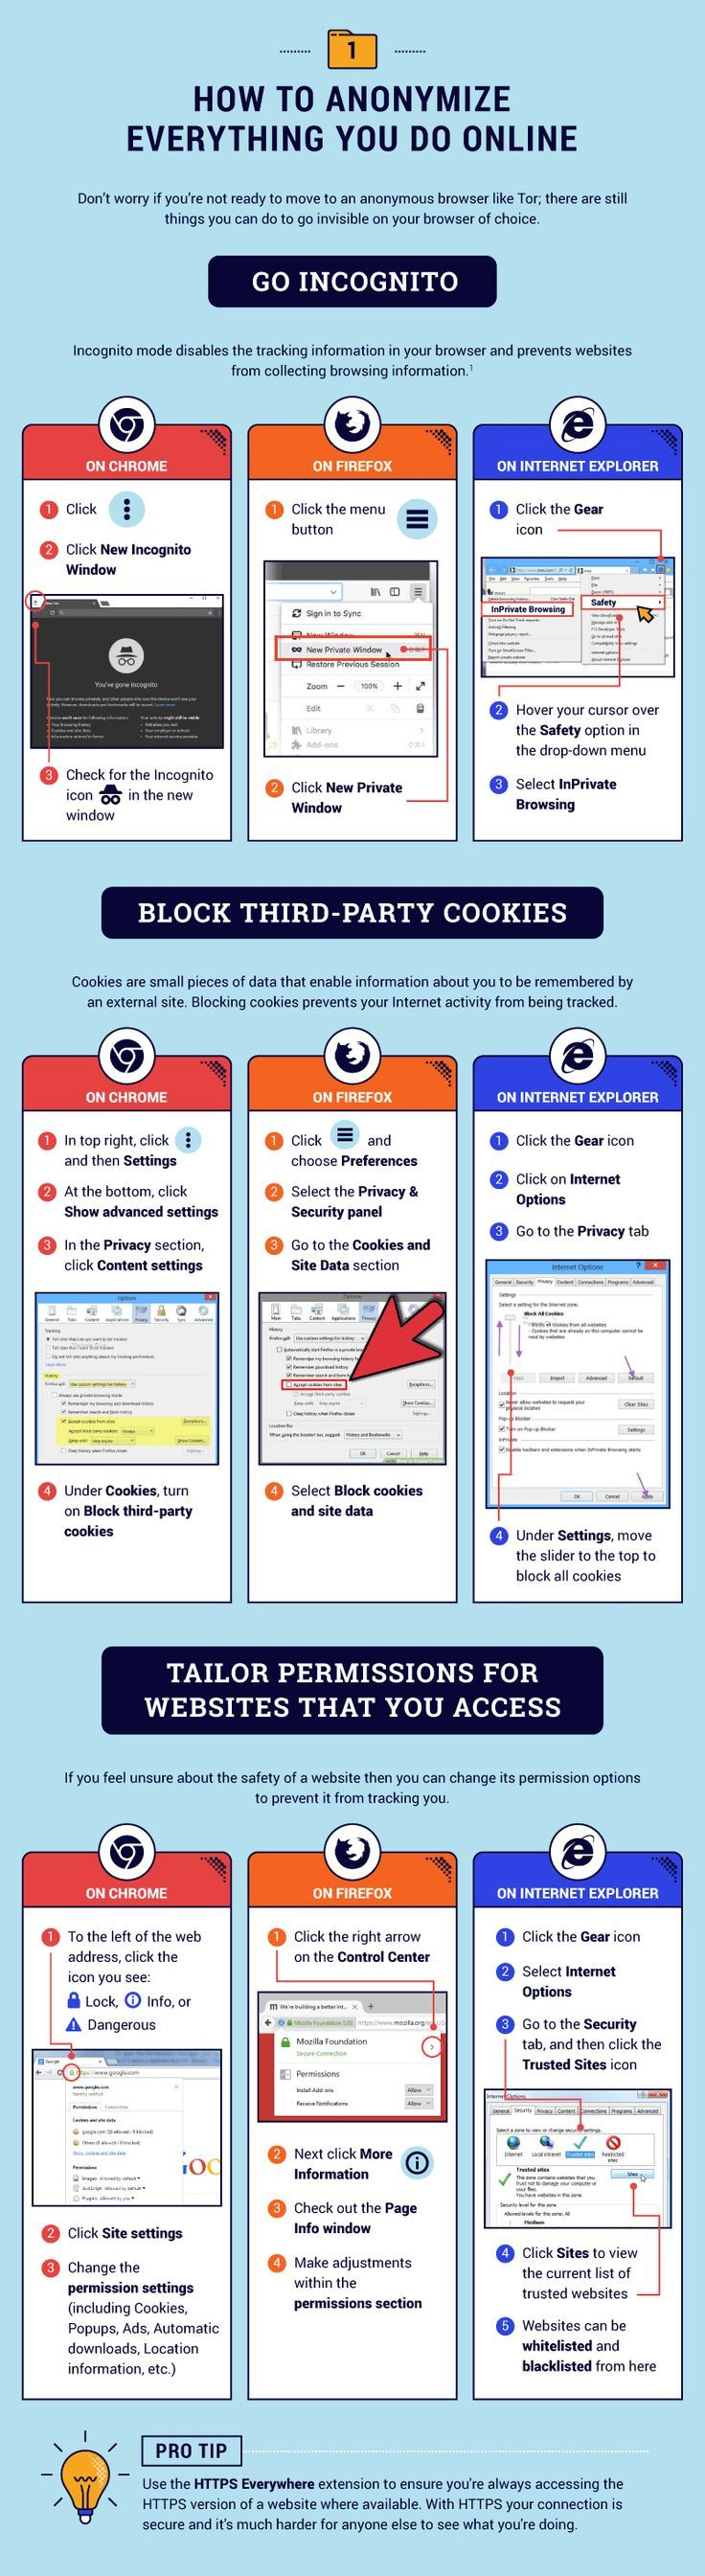 How To Turn Off Facebook Similar Page Suggestions Infographic Marketing Infographic Social Media Software